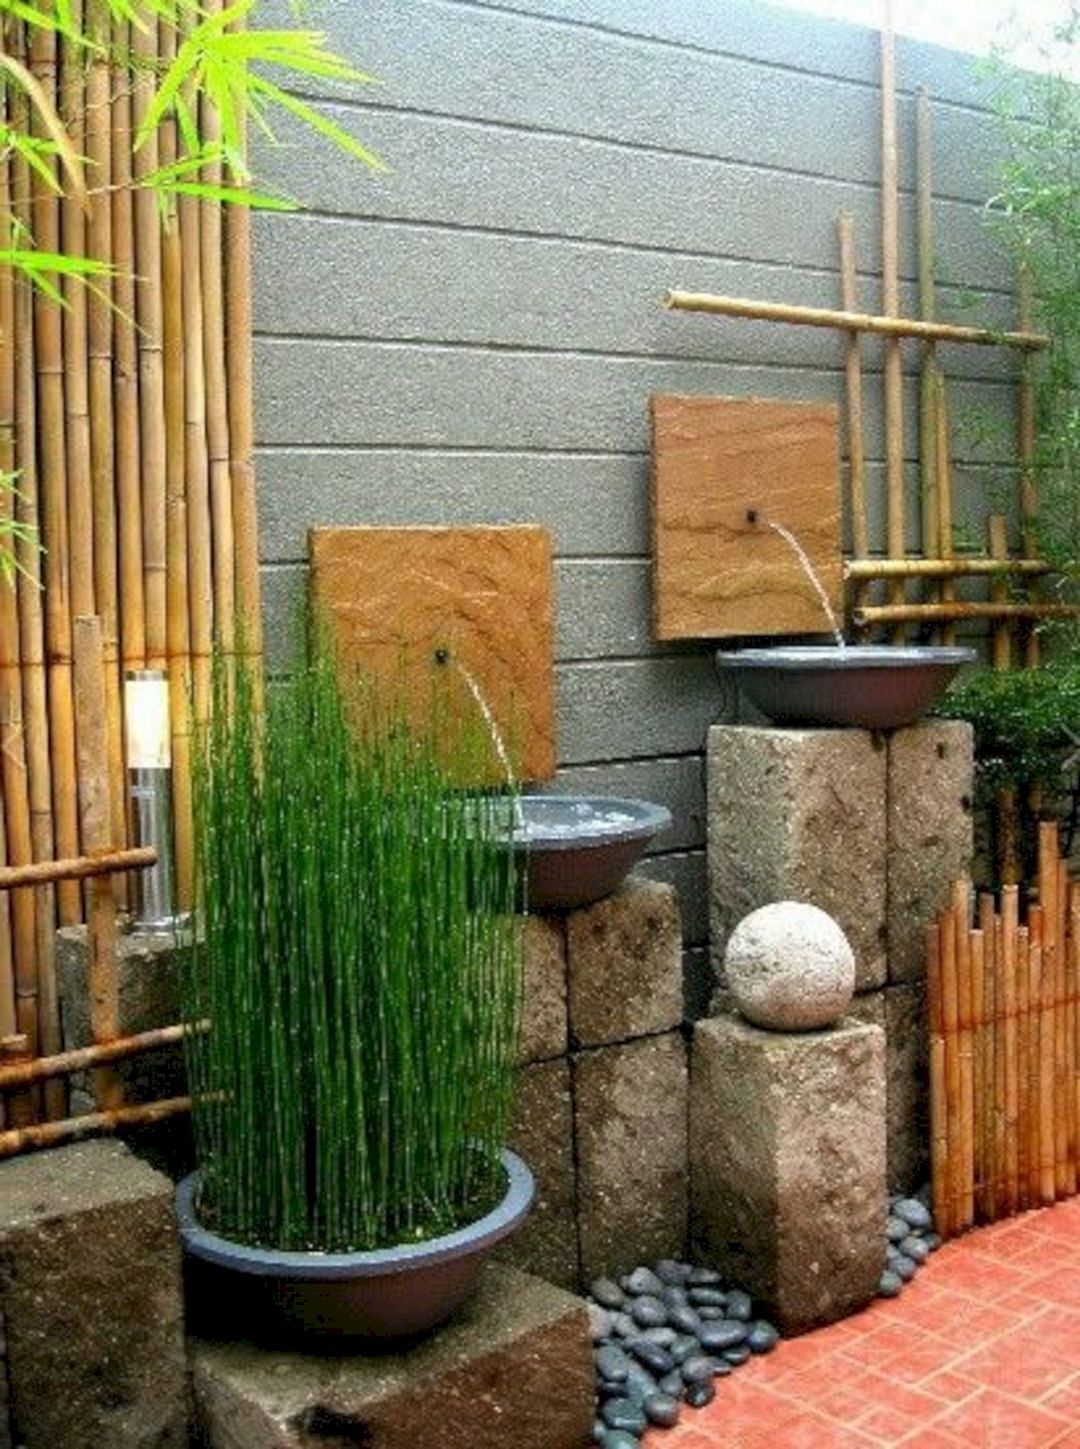 Top 10 Beautiful Zen Garden Ideas For Backyard | Mini zen ... on Small Backyard Japanese Garden Ideas id=35040